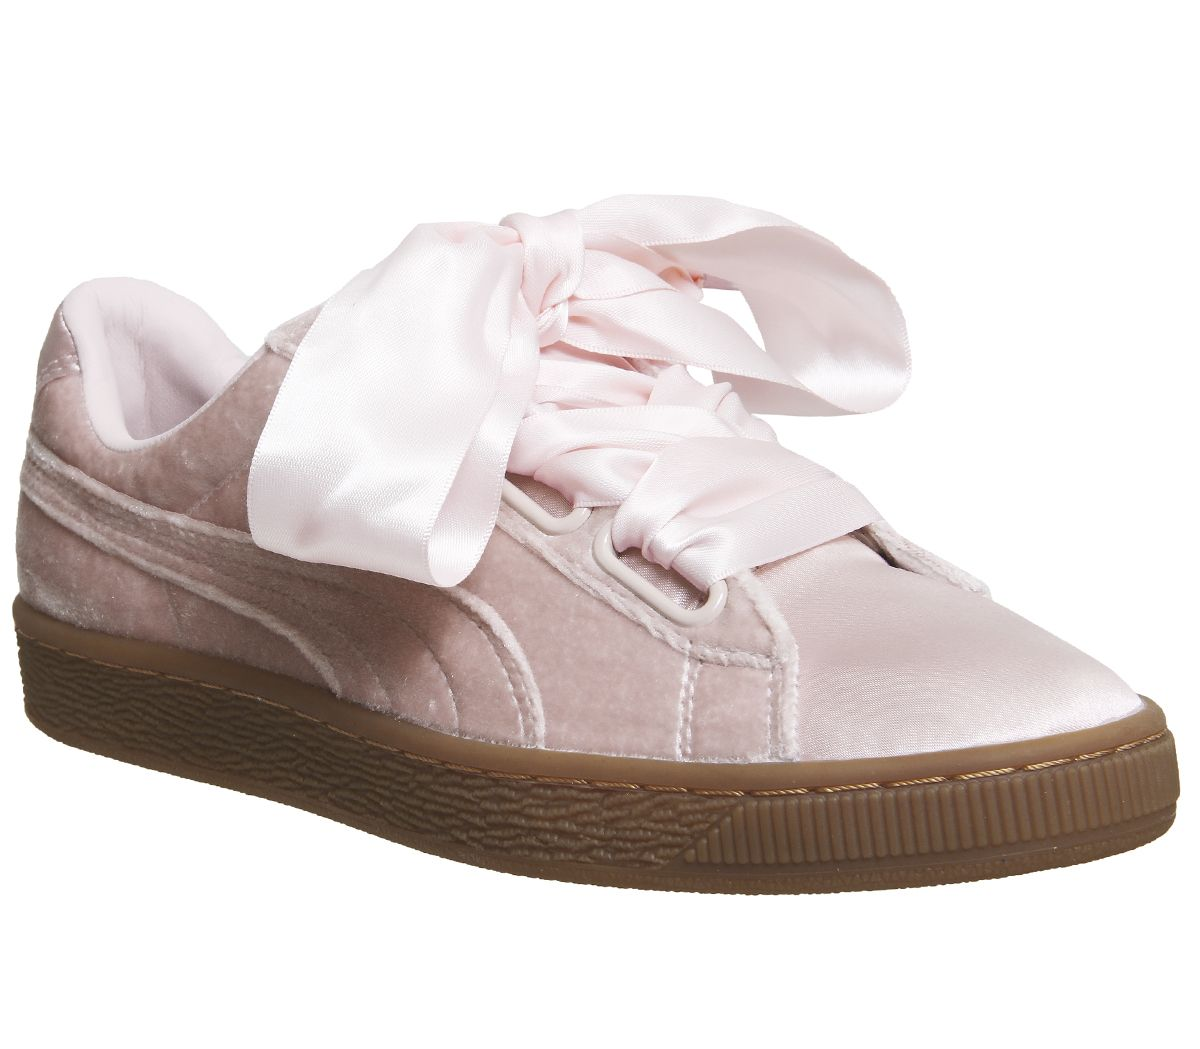 new product e4fdf 9f7fb Puma Basket Heart Trainers Silver Pink Gum - Hers trainers